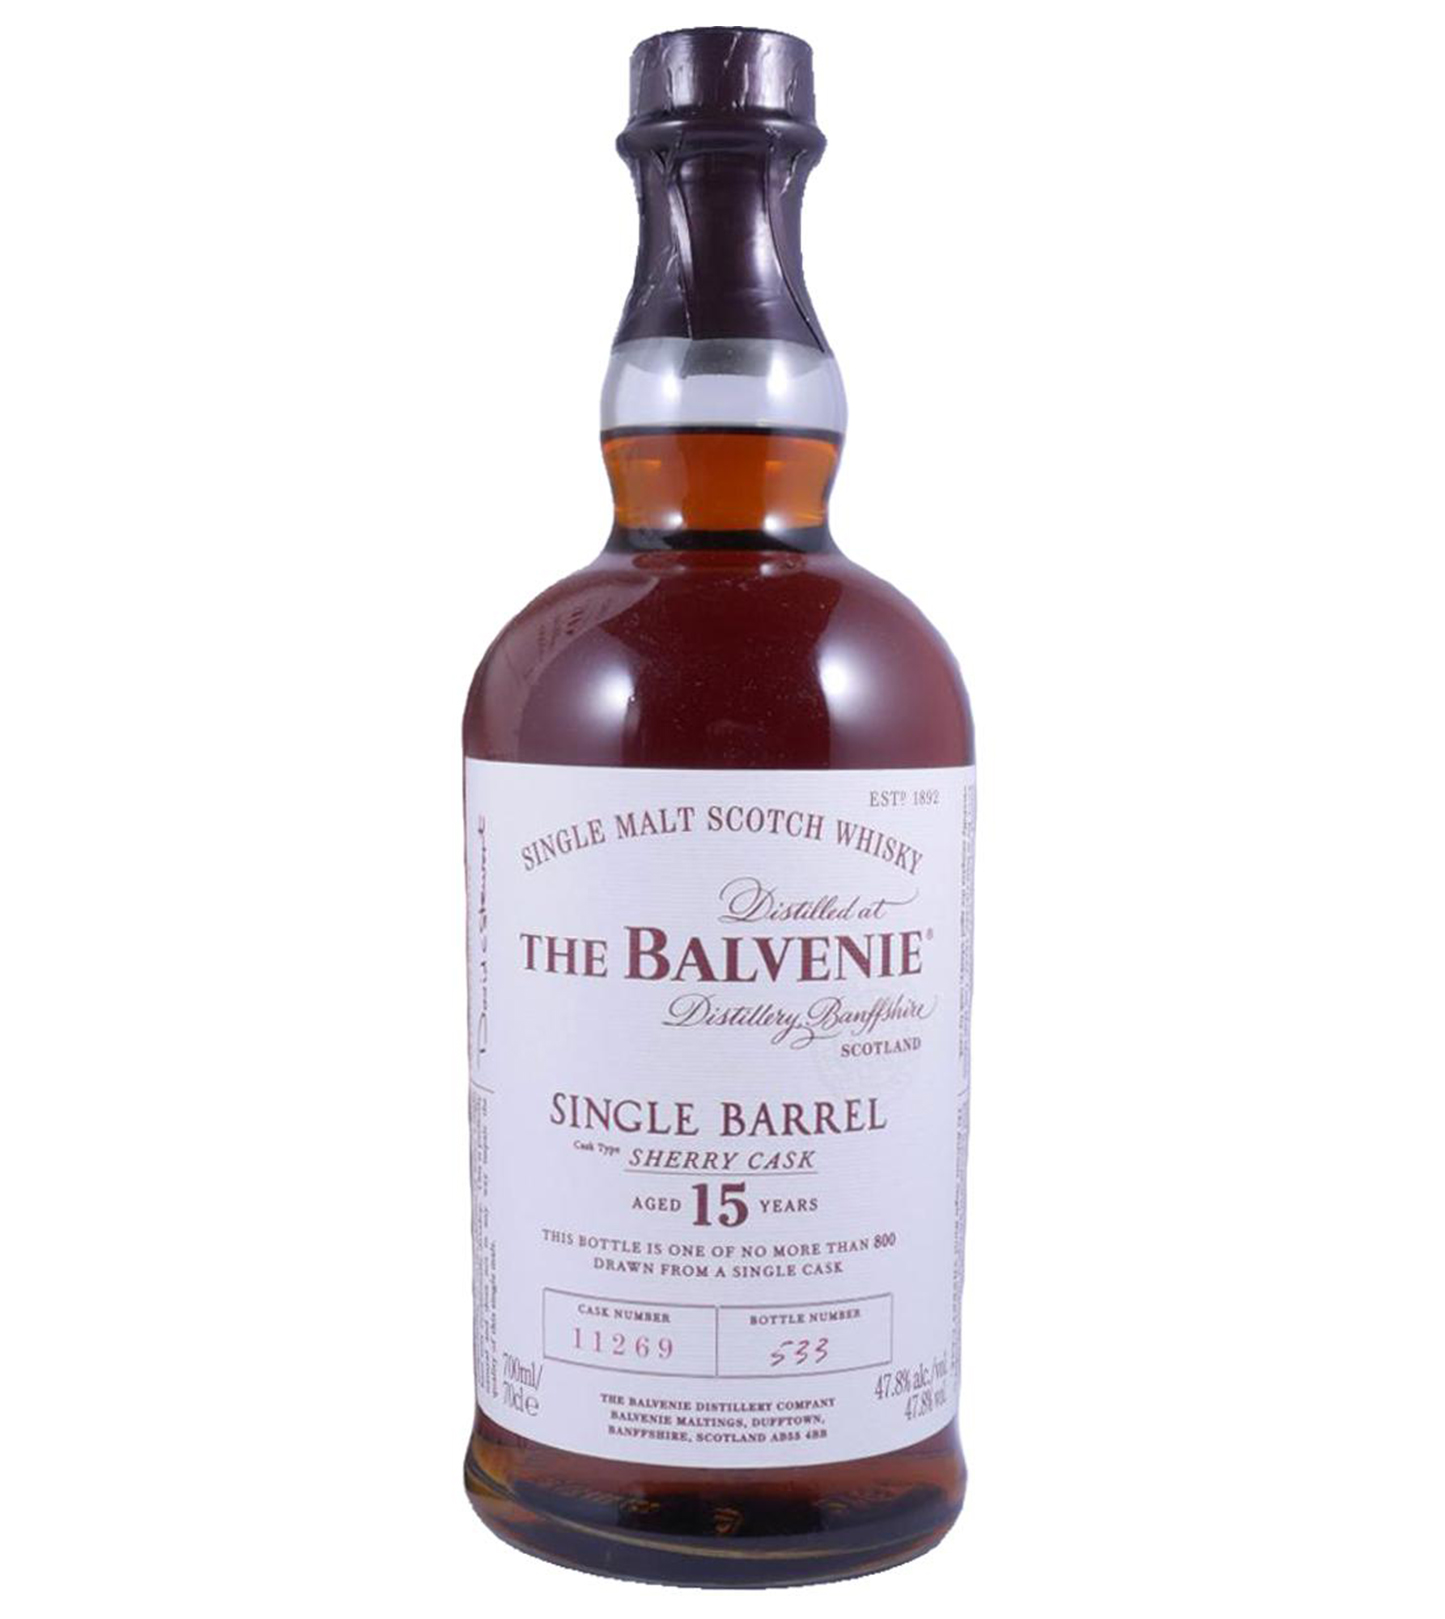 Balvenie 15 years Sherry Cask – cask #11269